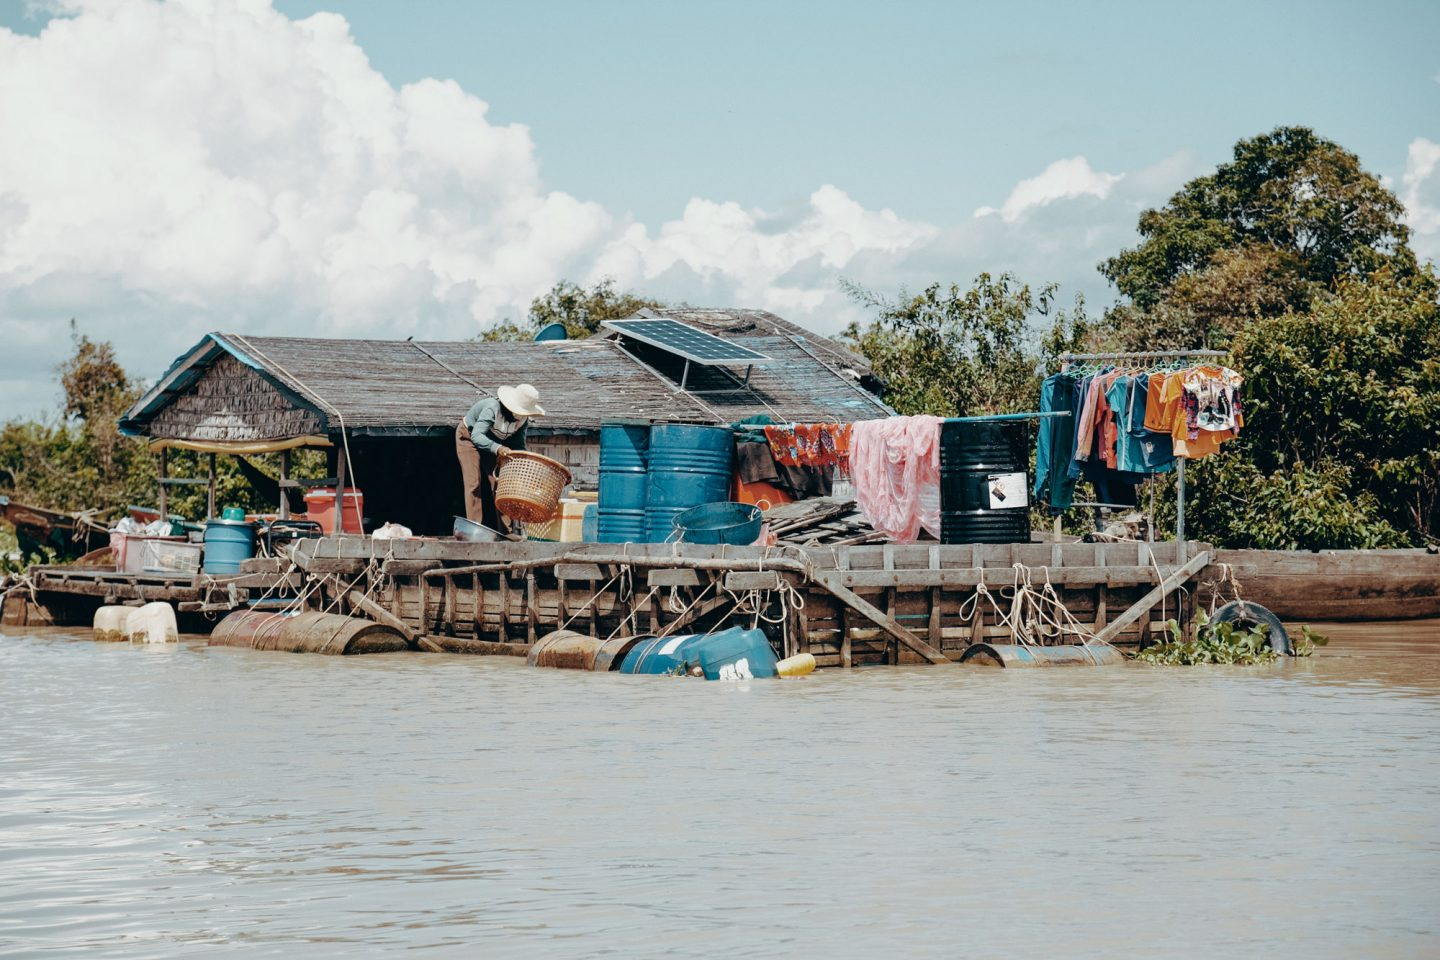 The Floating Villages of Tonle Sap Lake